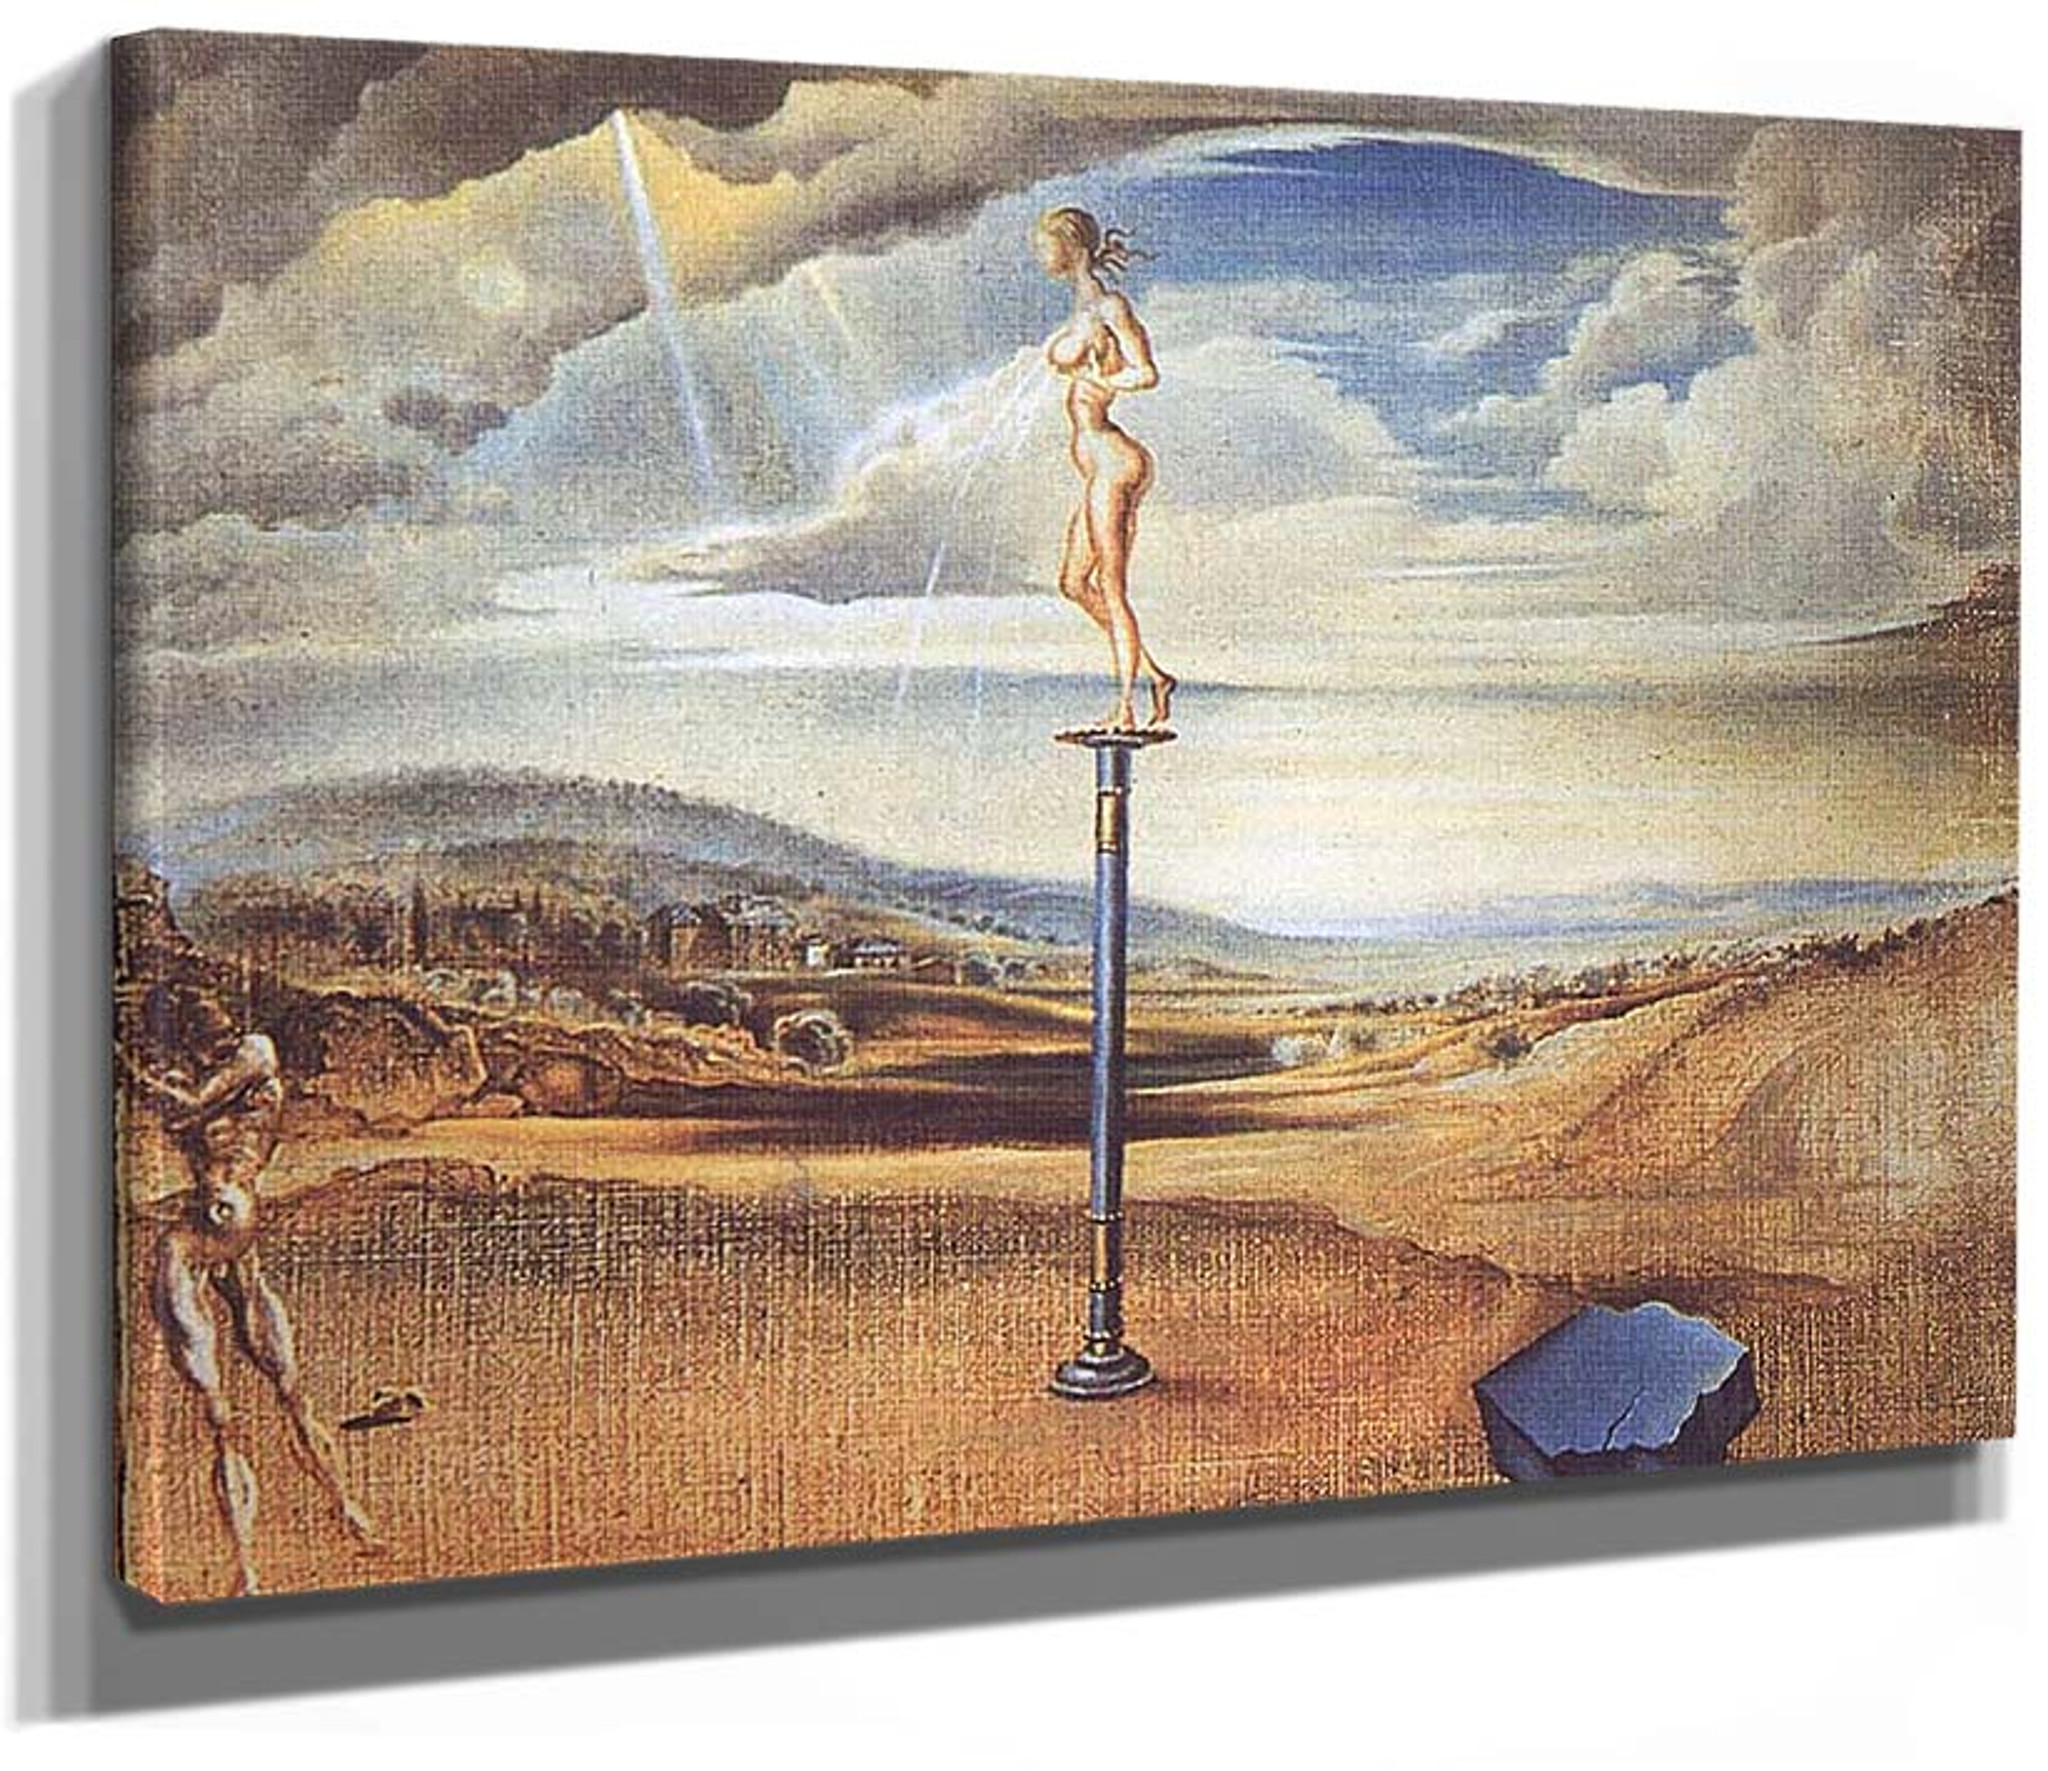 The Three Pines  by Dali   Giclee Canvas Print Repro